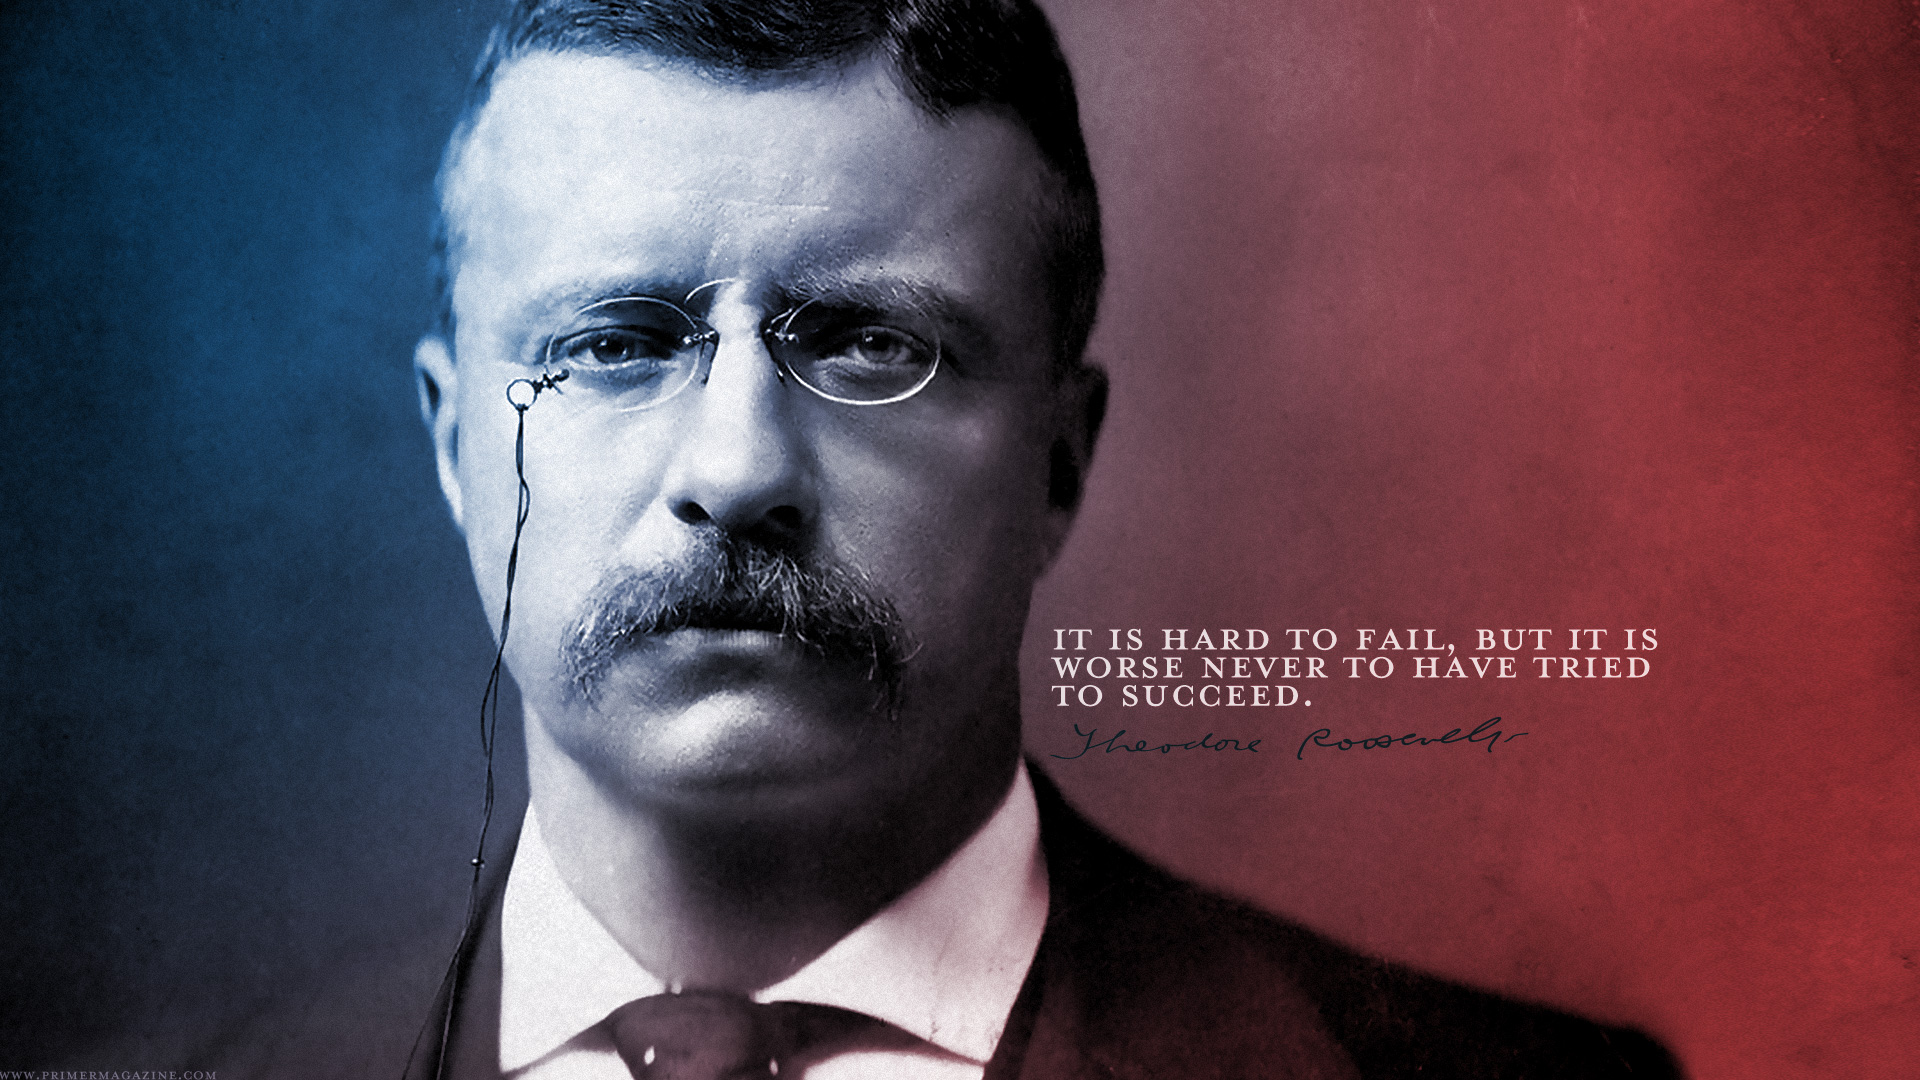 Teddy Roosevelt Wallpaper